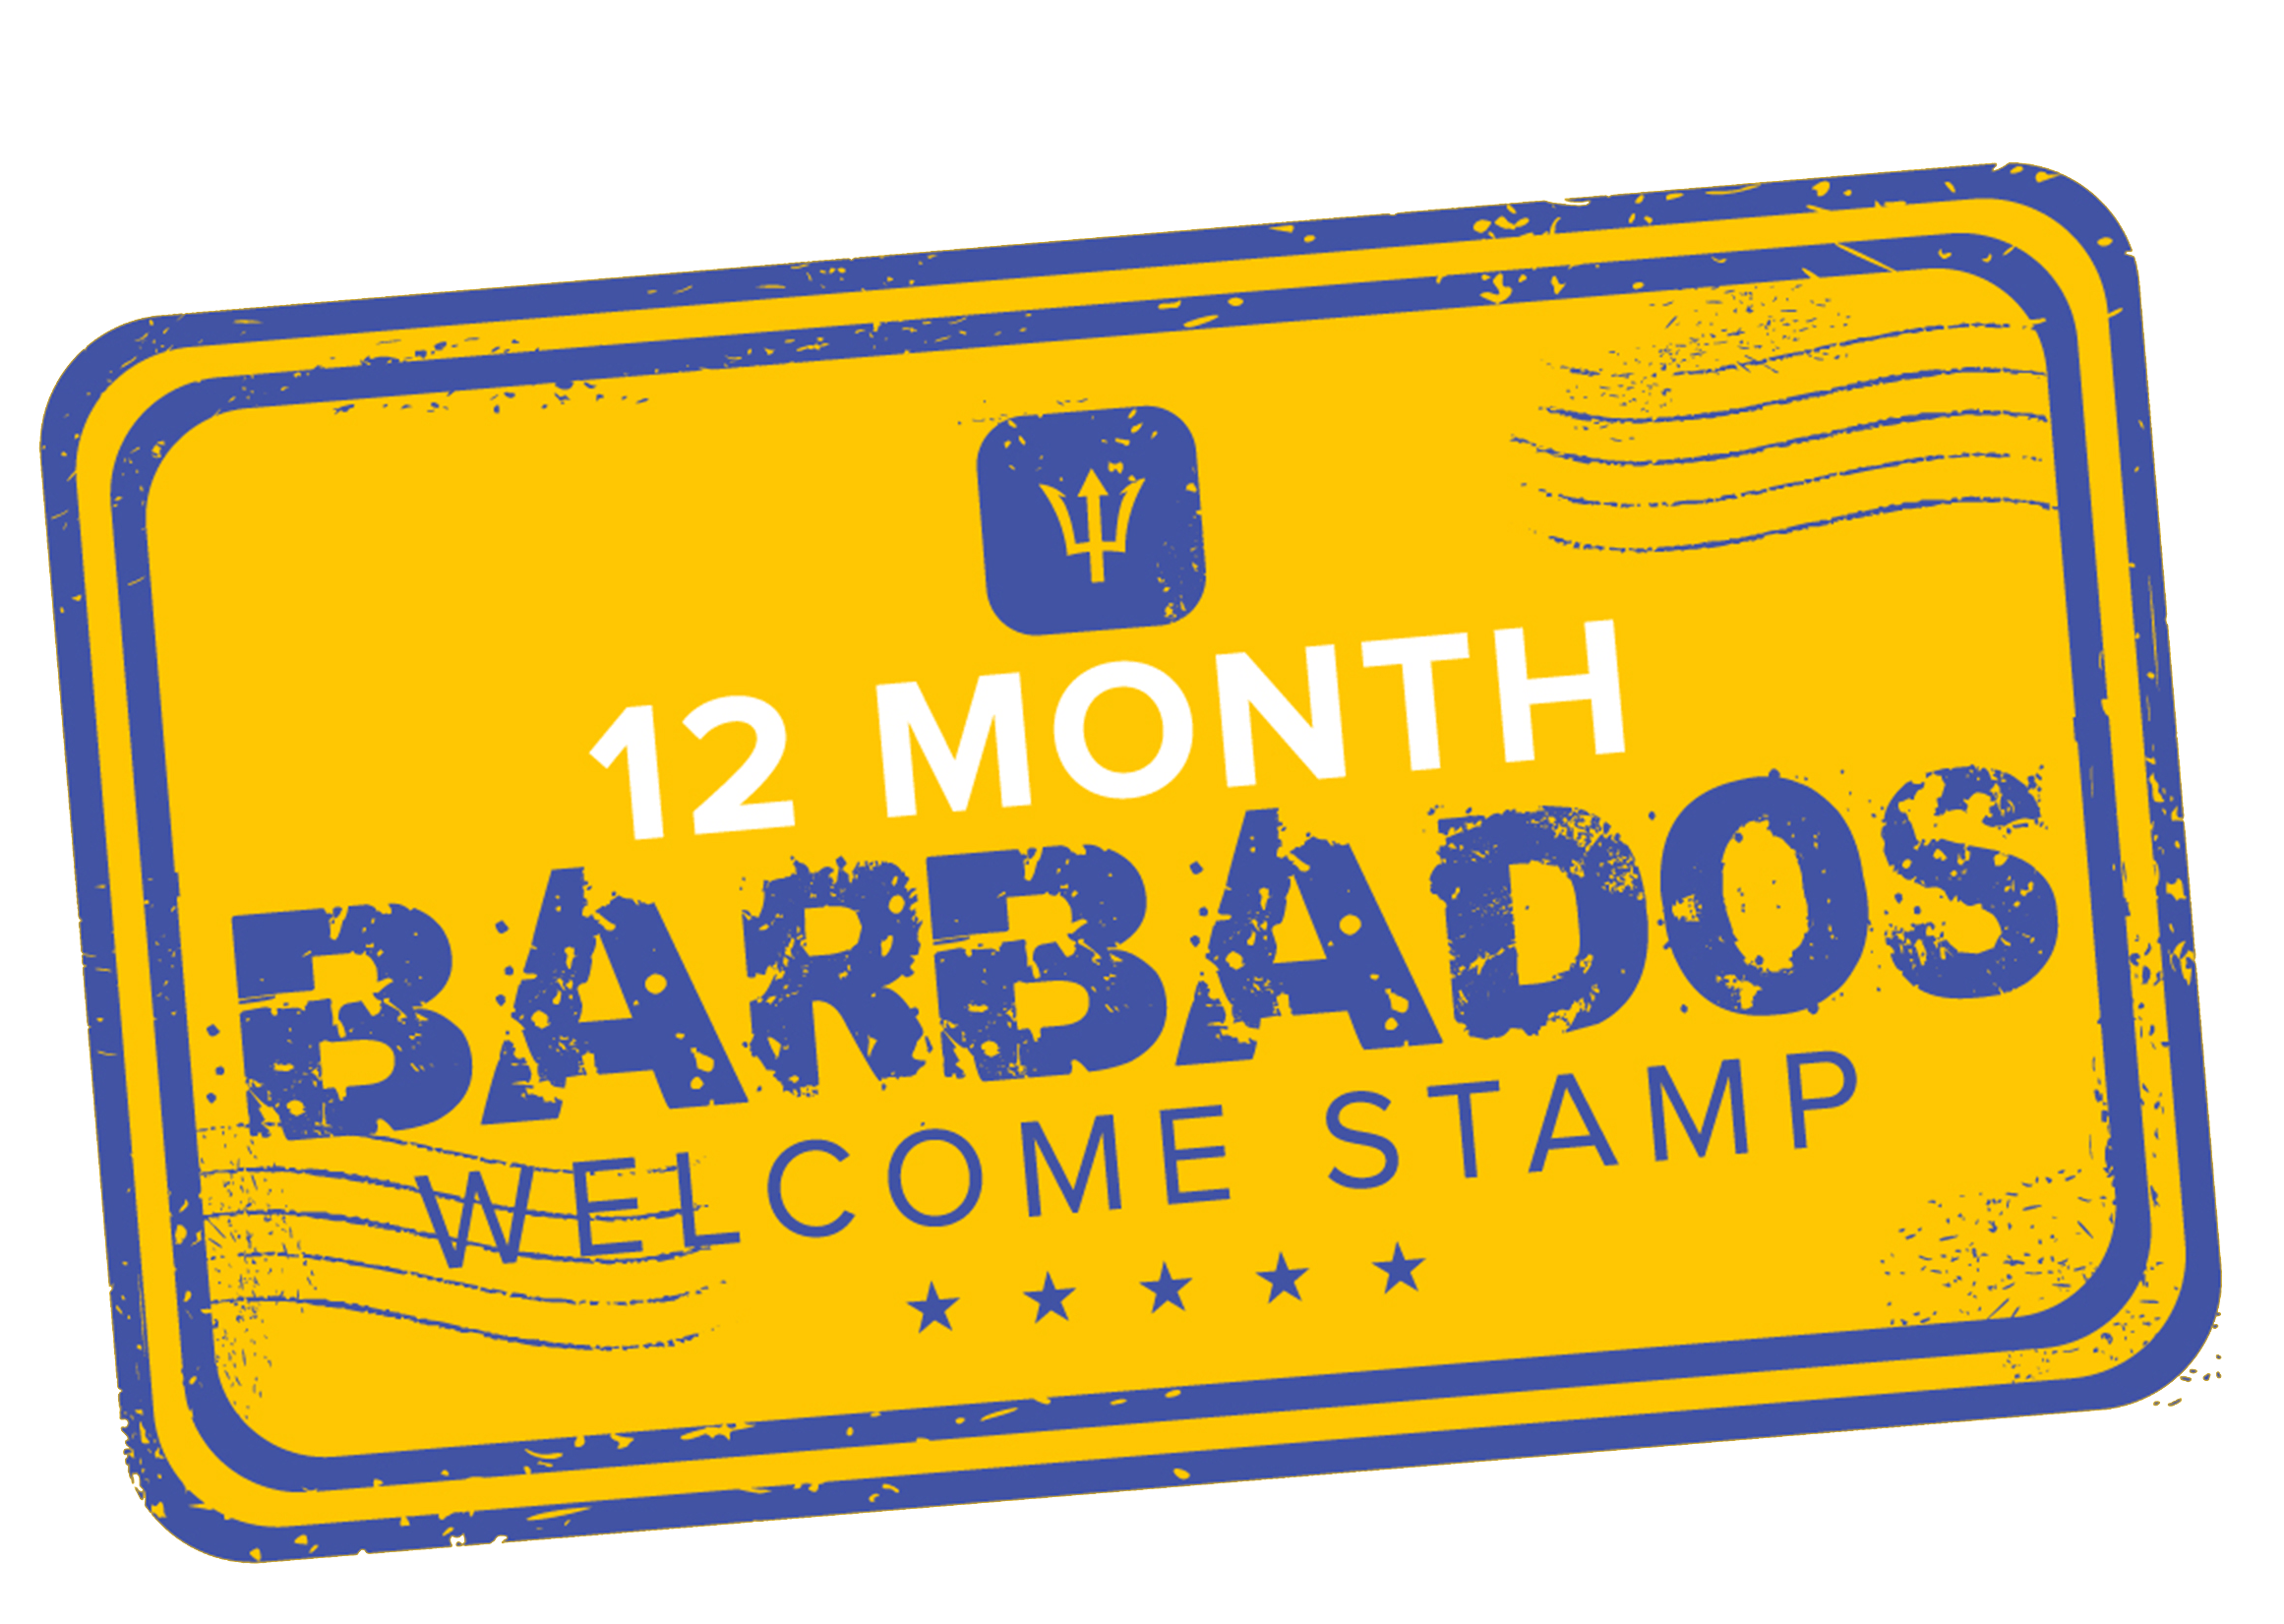 BARBADOS WELCOME STAMP 2020